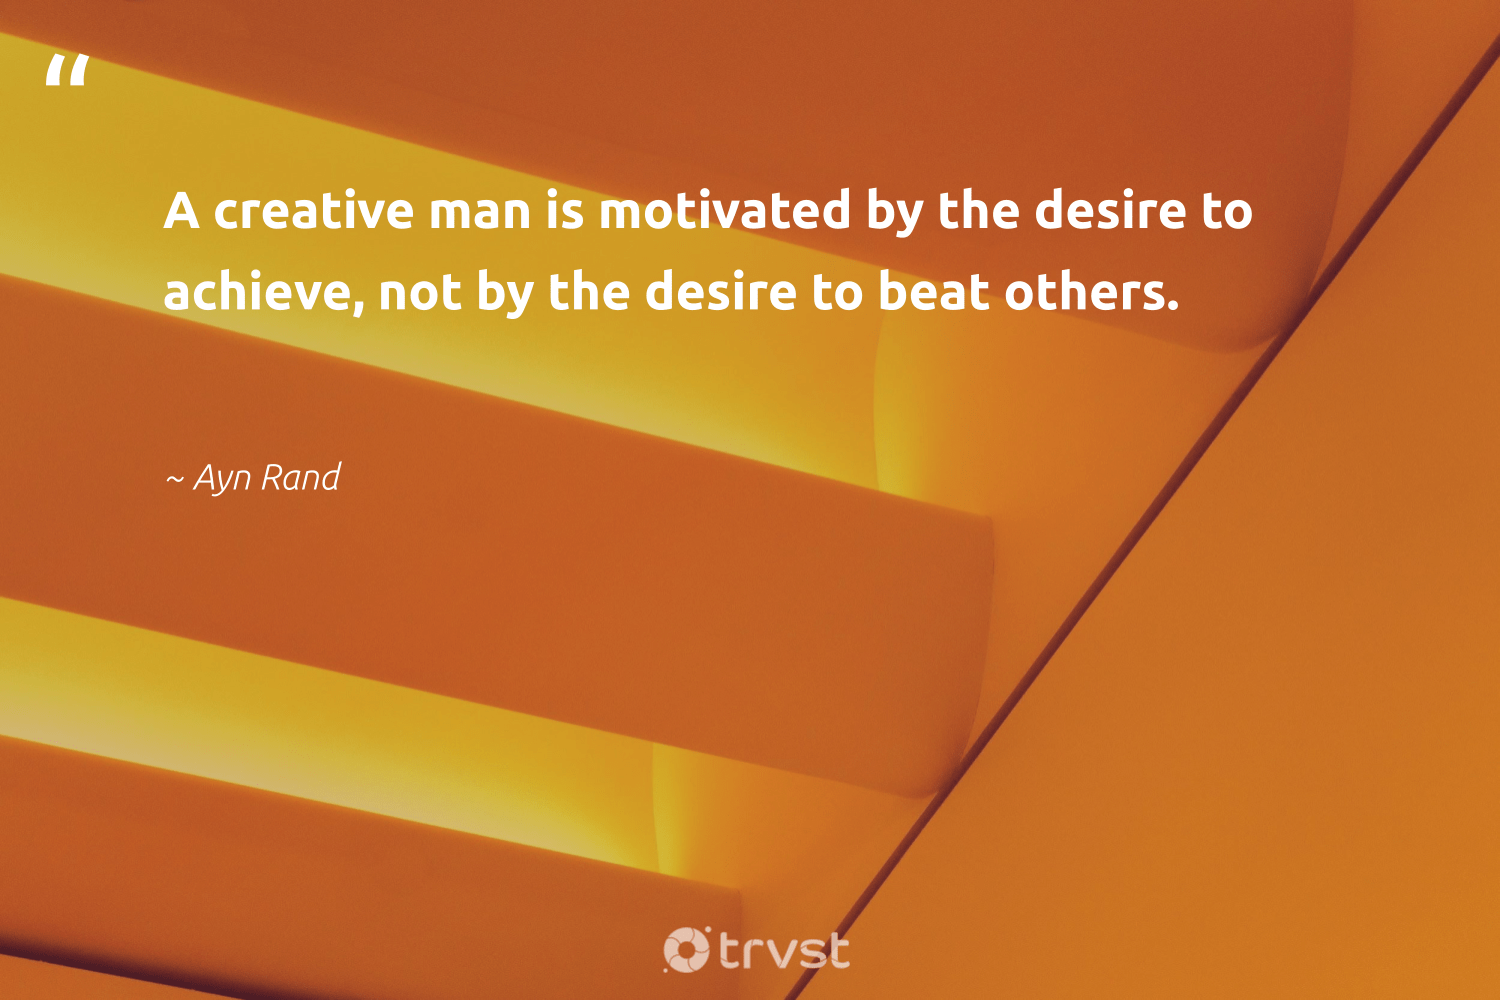 """A creative man is motivated by the desire to achieve, not by the desire to beat others.""  - Ayn Rand #trvst #quotes #creativity #creative #futureofwork #softskills #changetheworld #sketchbook #nevergiveup #begreat #bethechange #designinspiration"